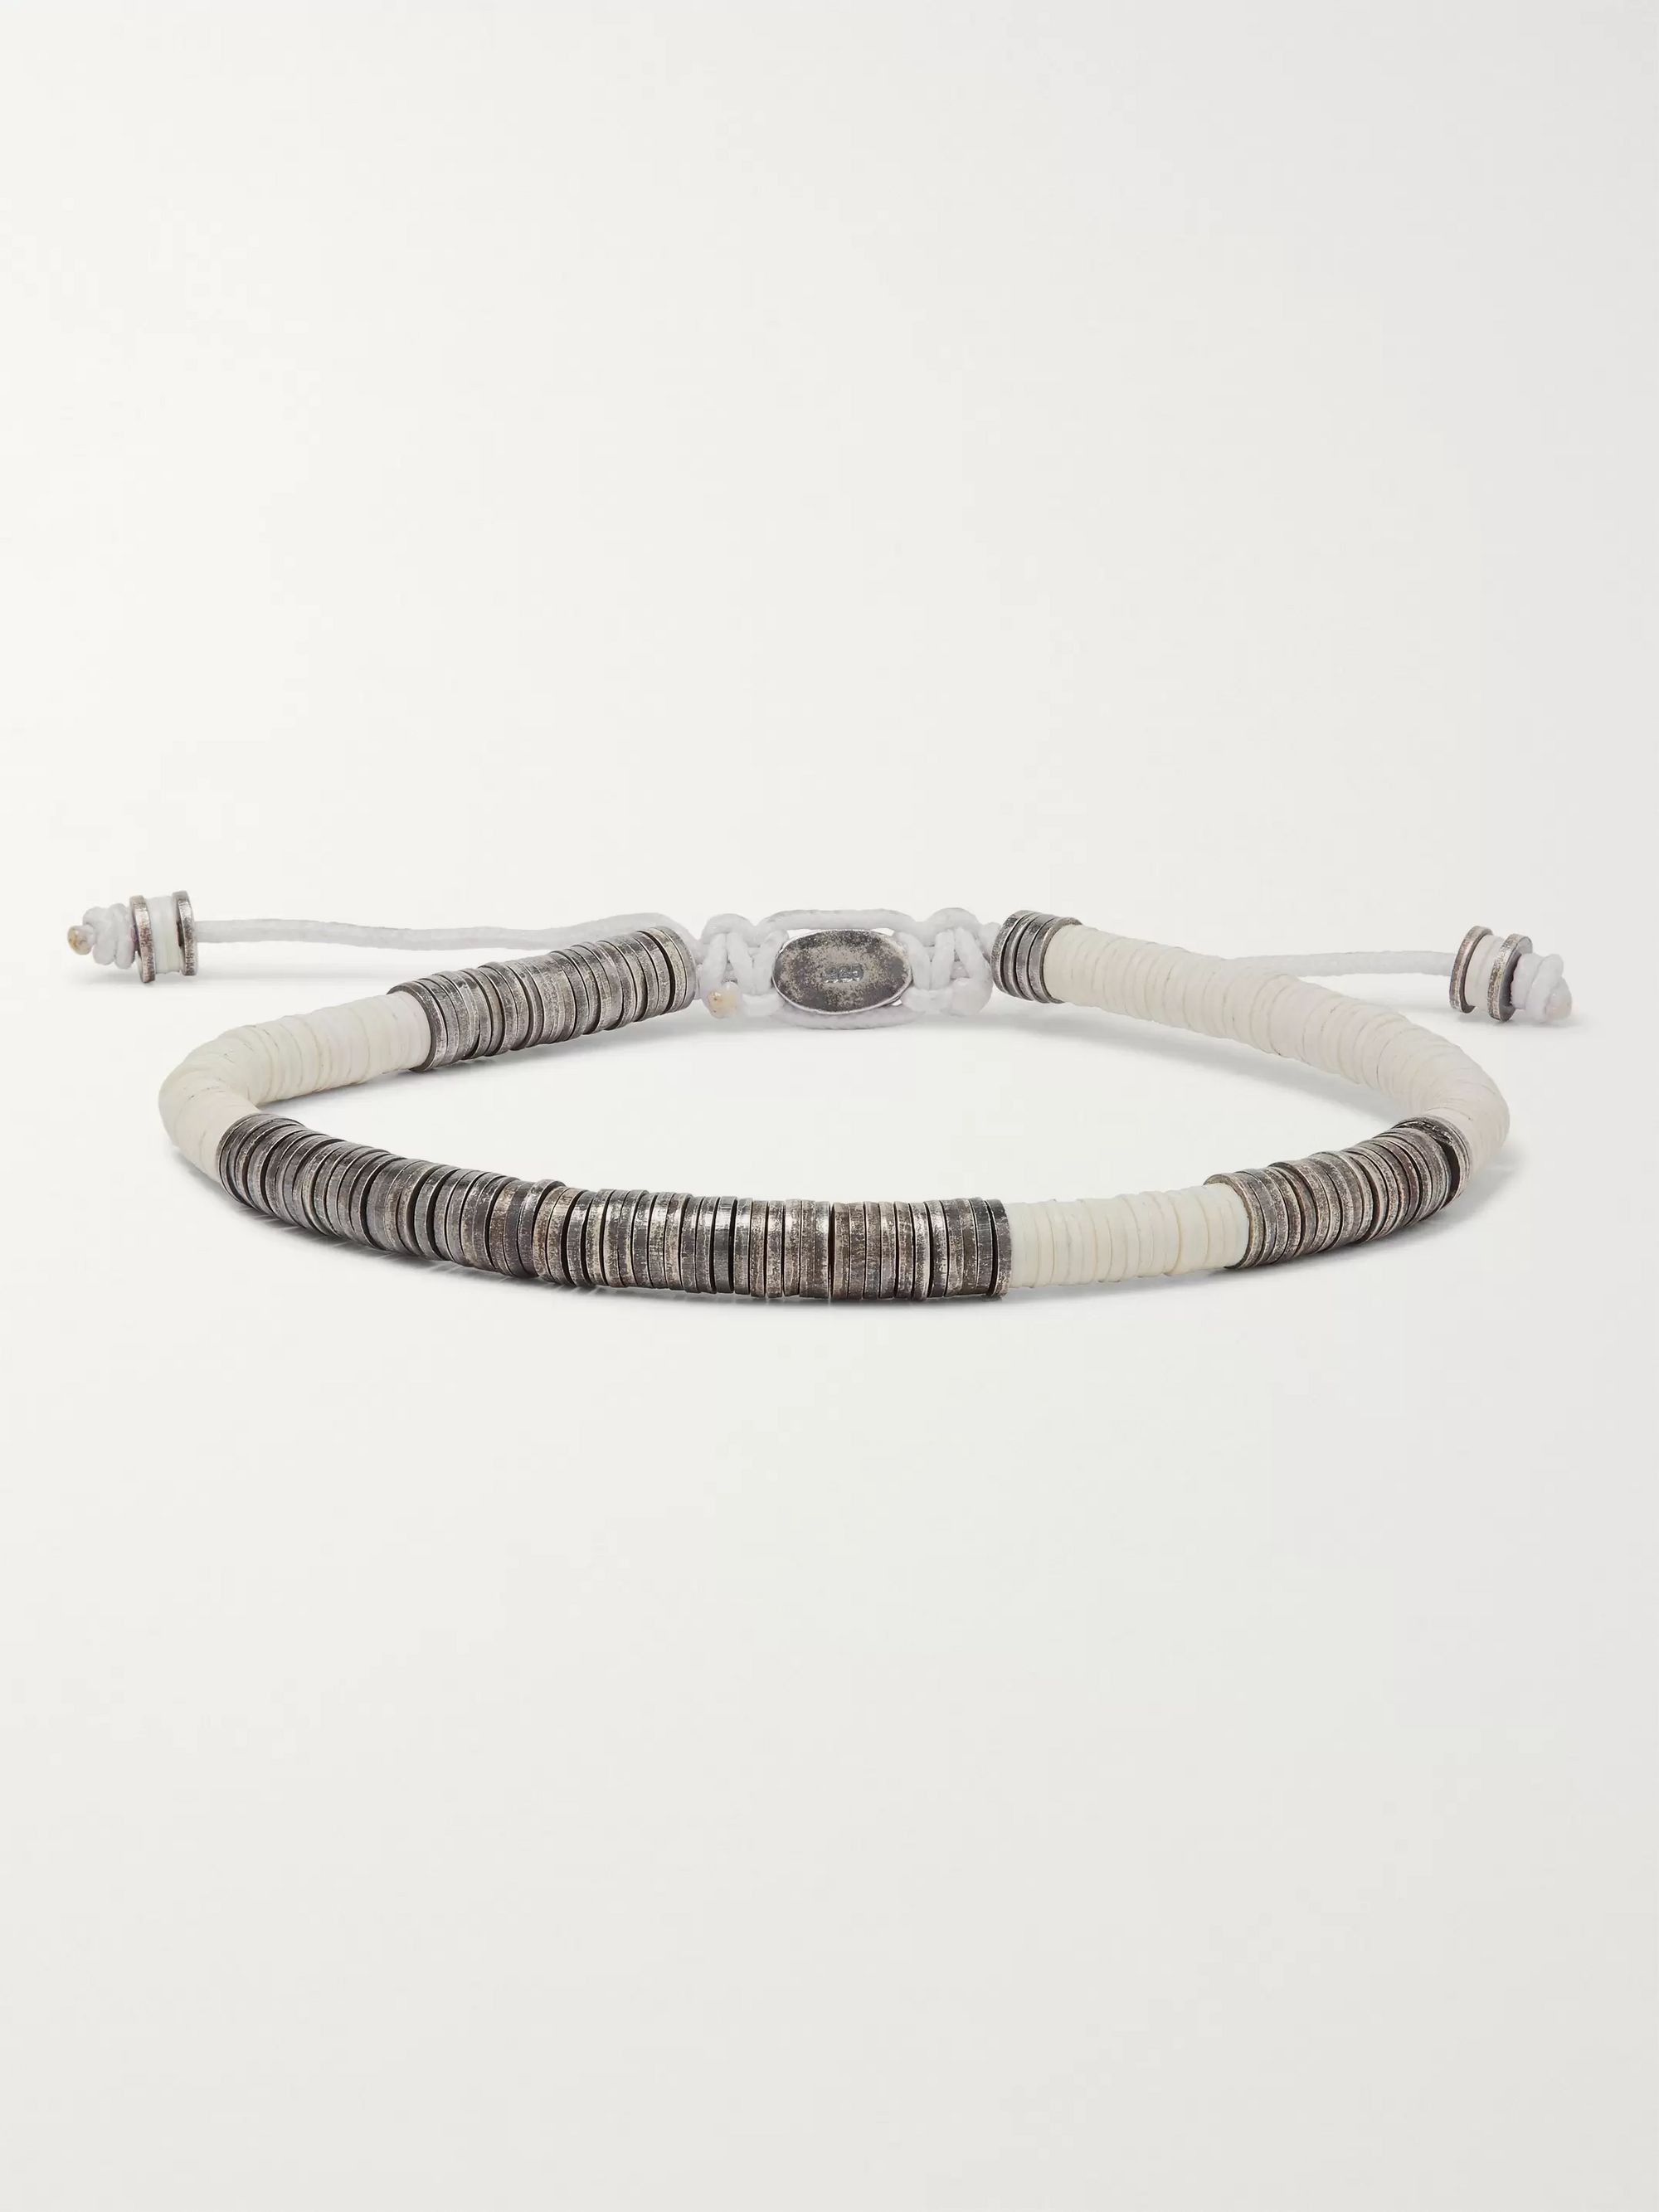 M.Cohen Burnished-Sterling Silver and Vinyl Beaded Bracelet